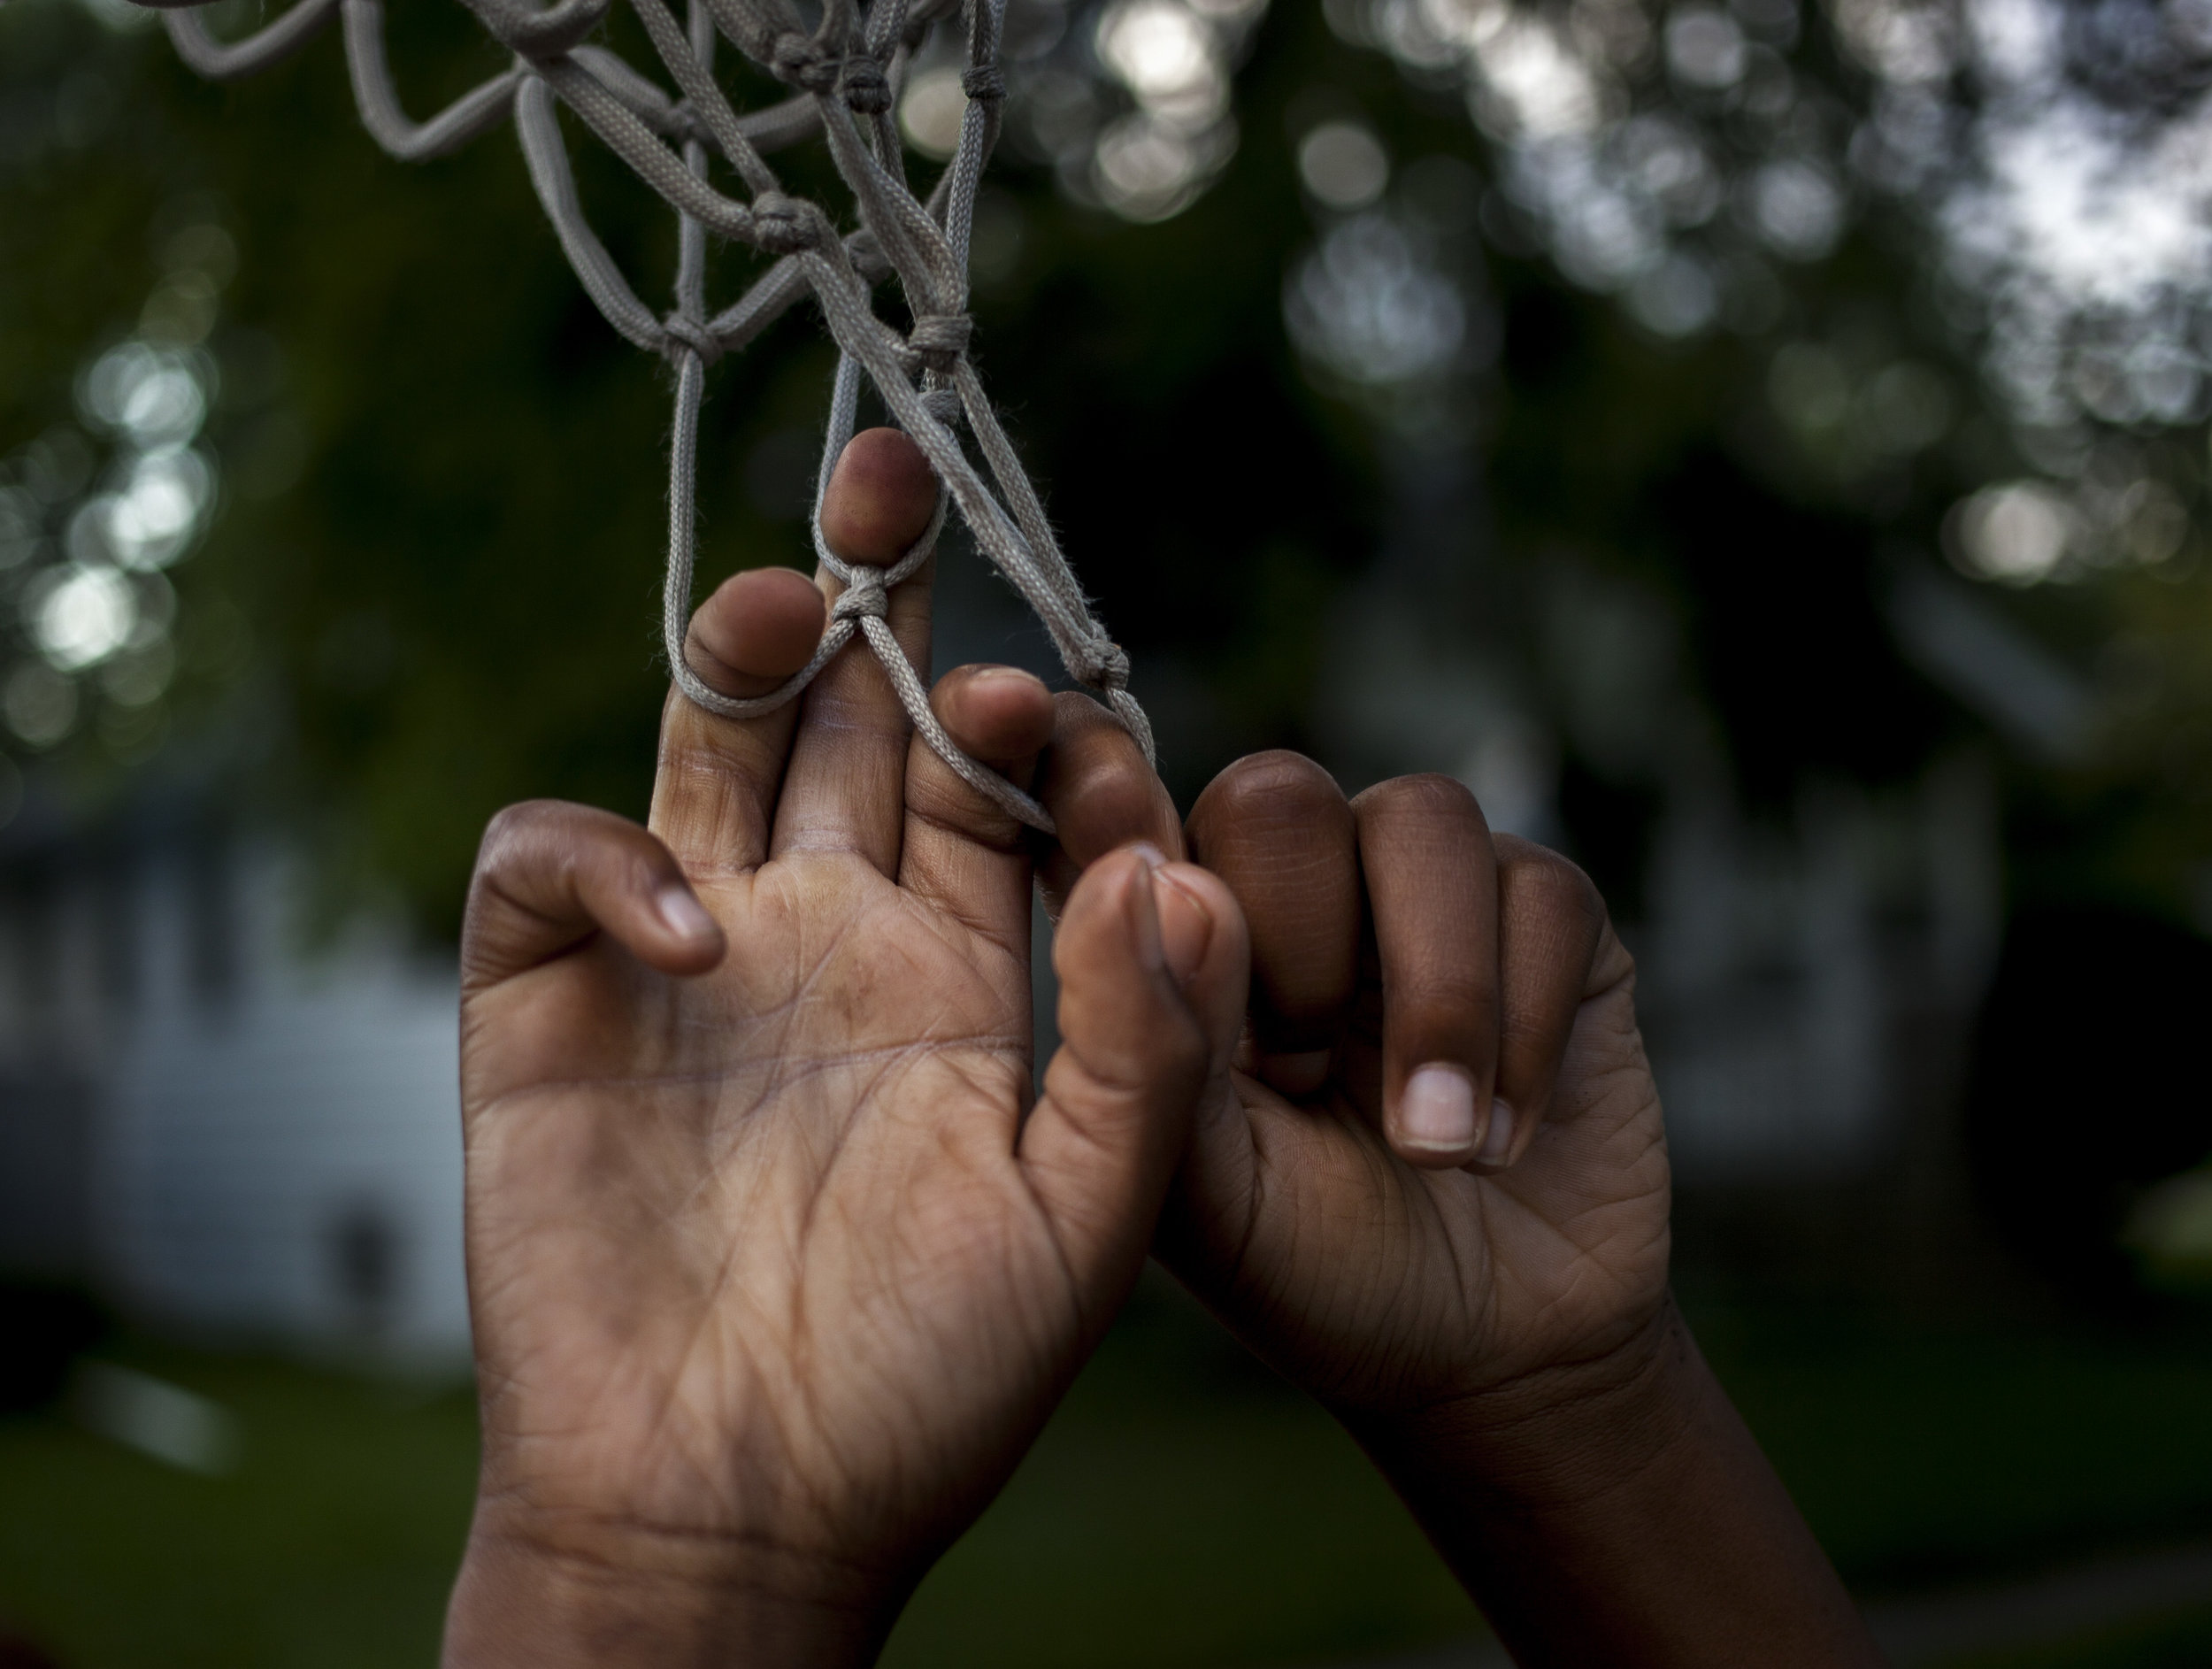 Boop Hardy, 10, hangs from the net outside a friend's house during a pick up game of basketball on Saginaw's Westside. Street basketball in Saginaw, Mich. is a way to form community among the kids of the neighborhood as friendships form and their basketball skills are put to the test.